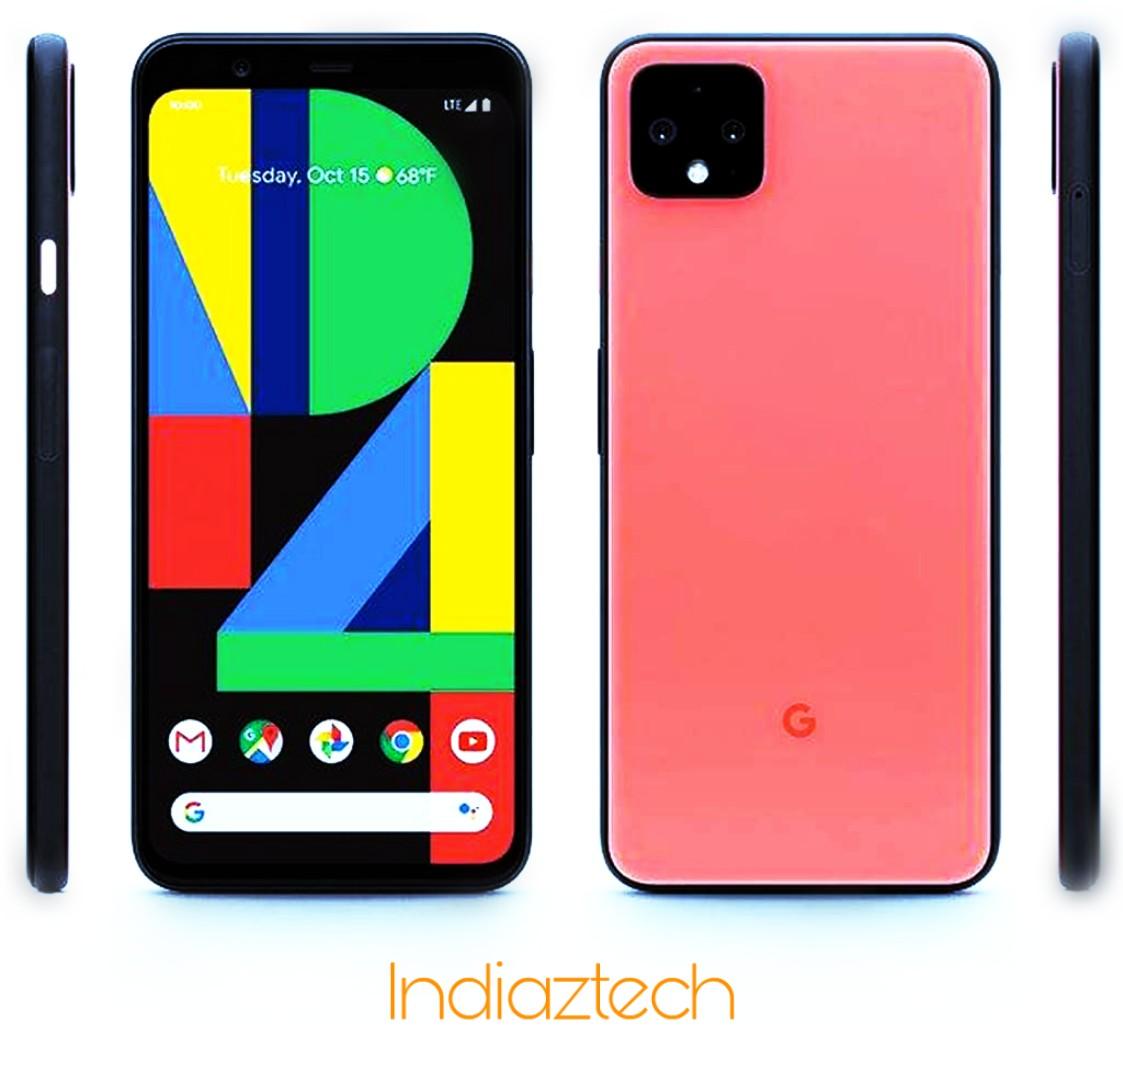 Google Pixel 4 and Pixel 4 XL launch date revealed